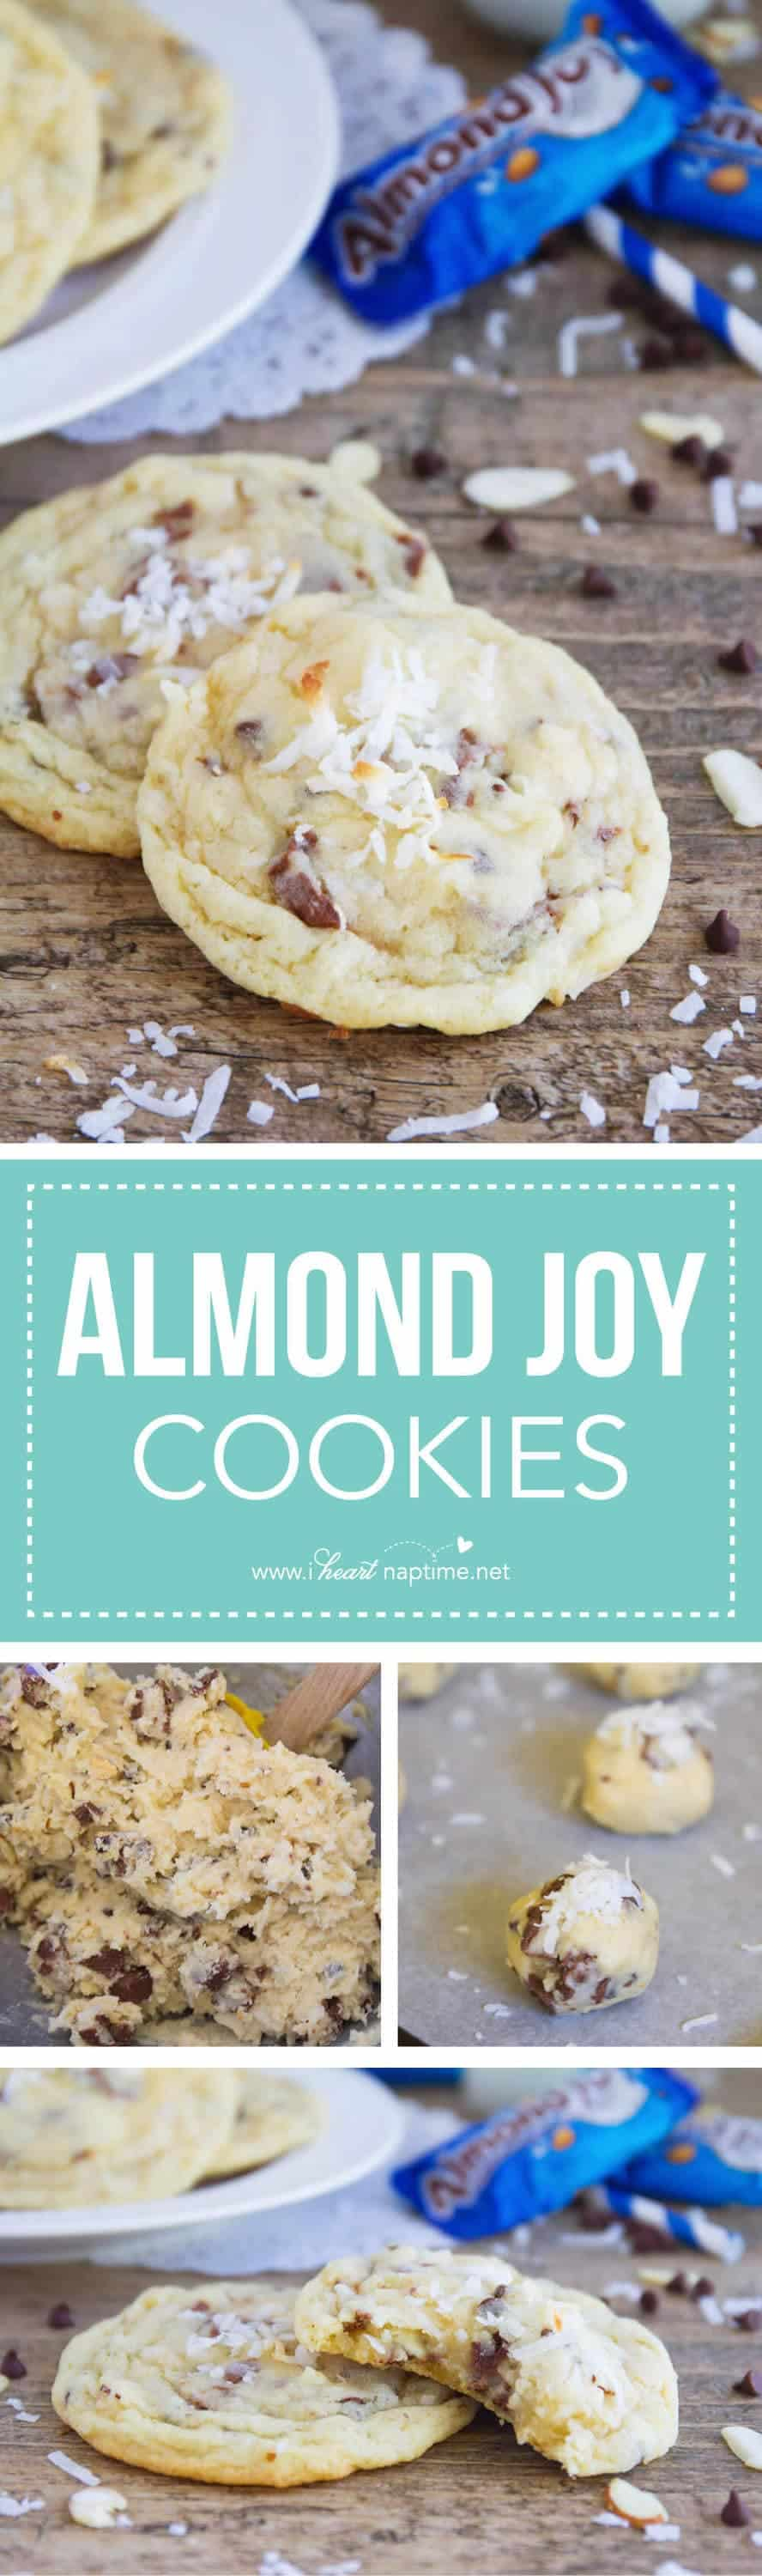 Almond Joy Cookies - a rich coconut cookie dough, packed full of coconut, chocolate chips, almonds, and Almond Joy pieces. An over the top indulgent treat!